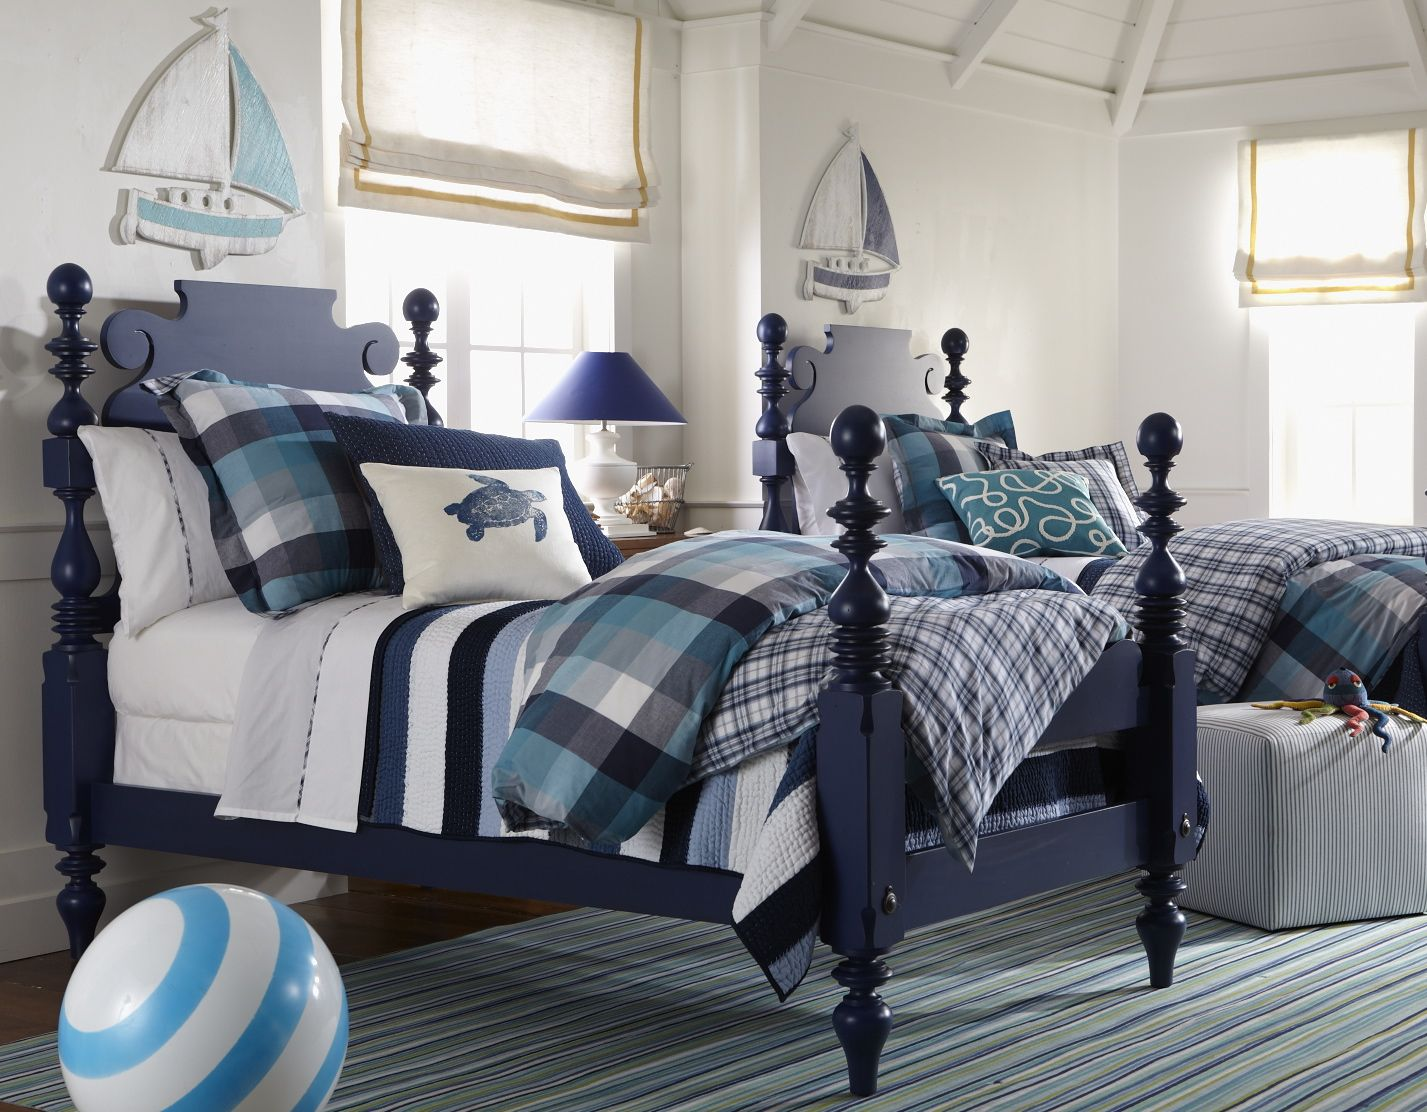 ethan allen bedrooms. Ethan Allen  Quincy Bed now in twin size great for the guest room too 194 best New Country images on Pinterest allen